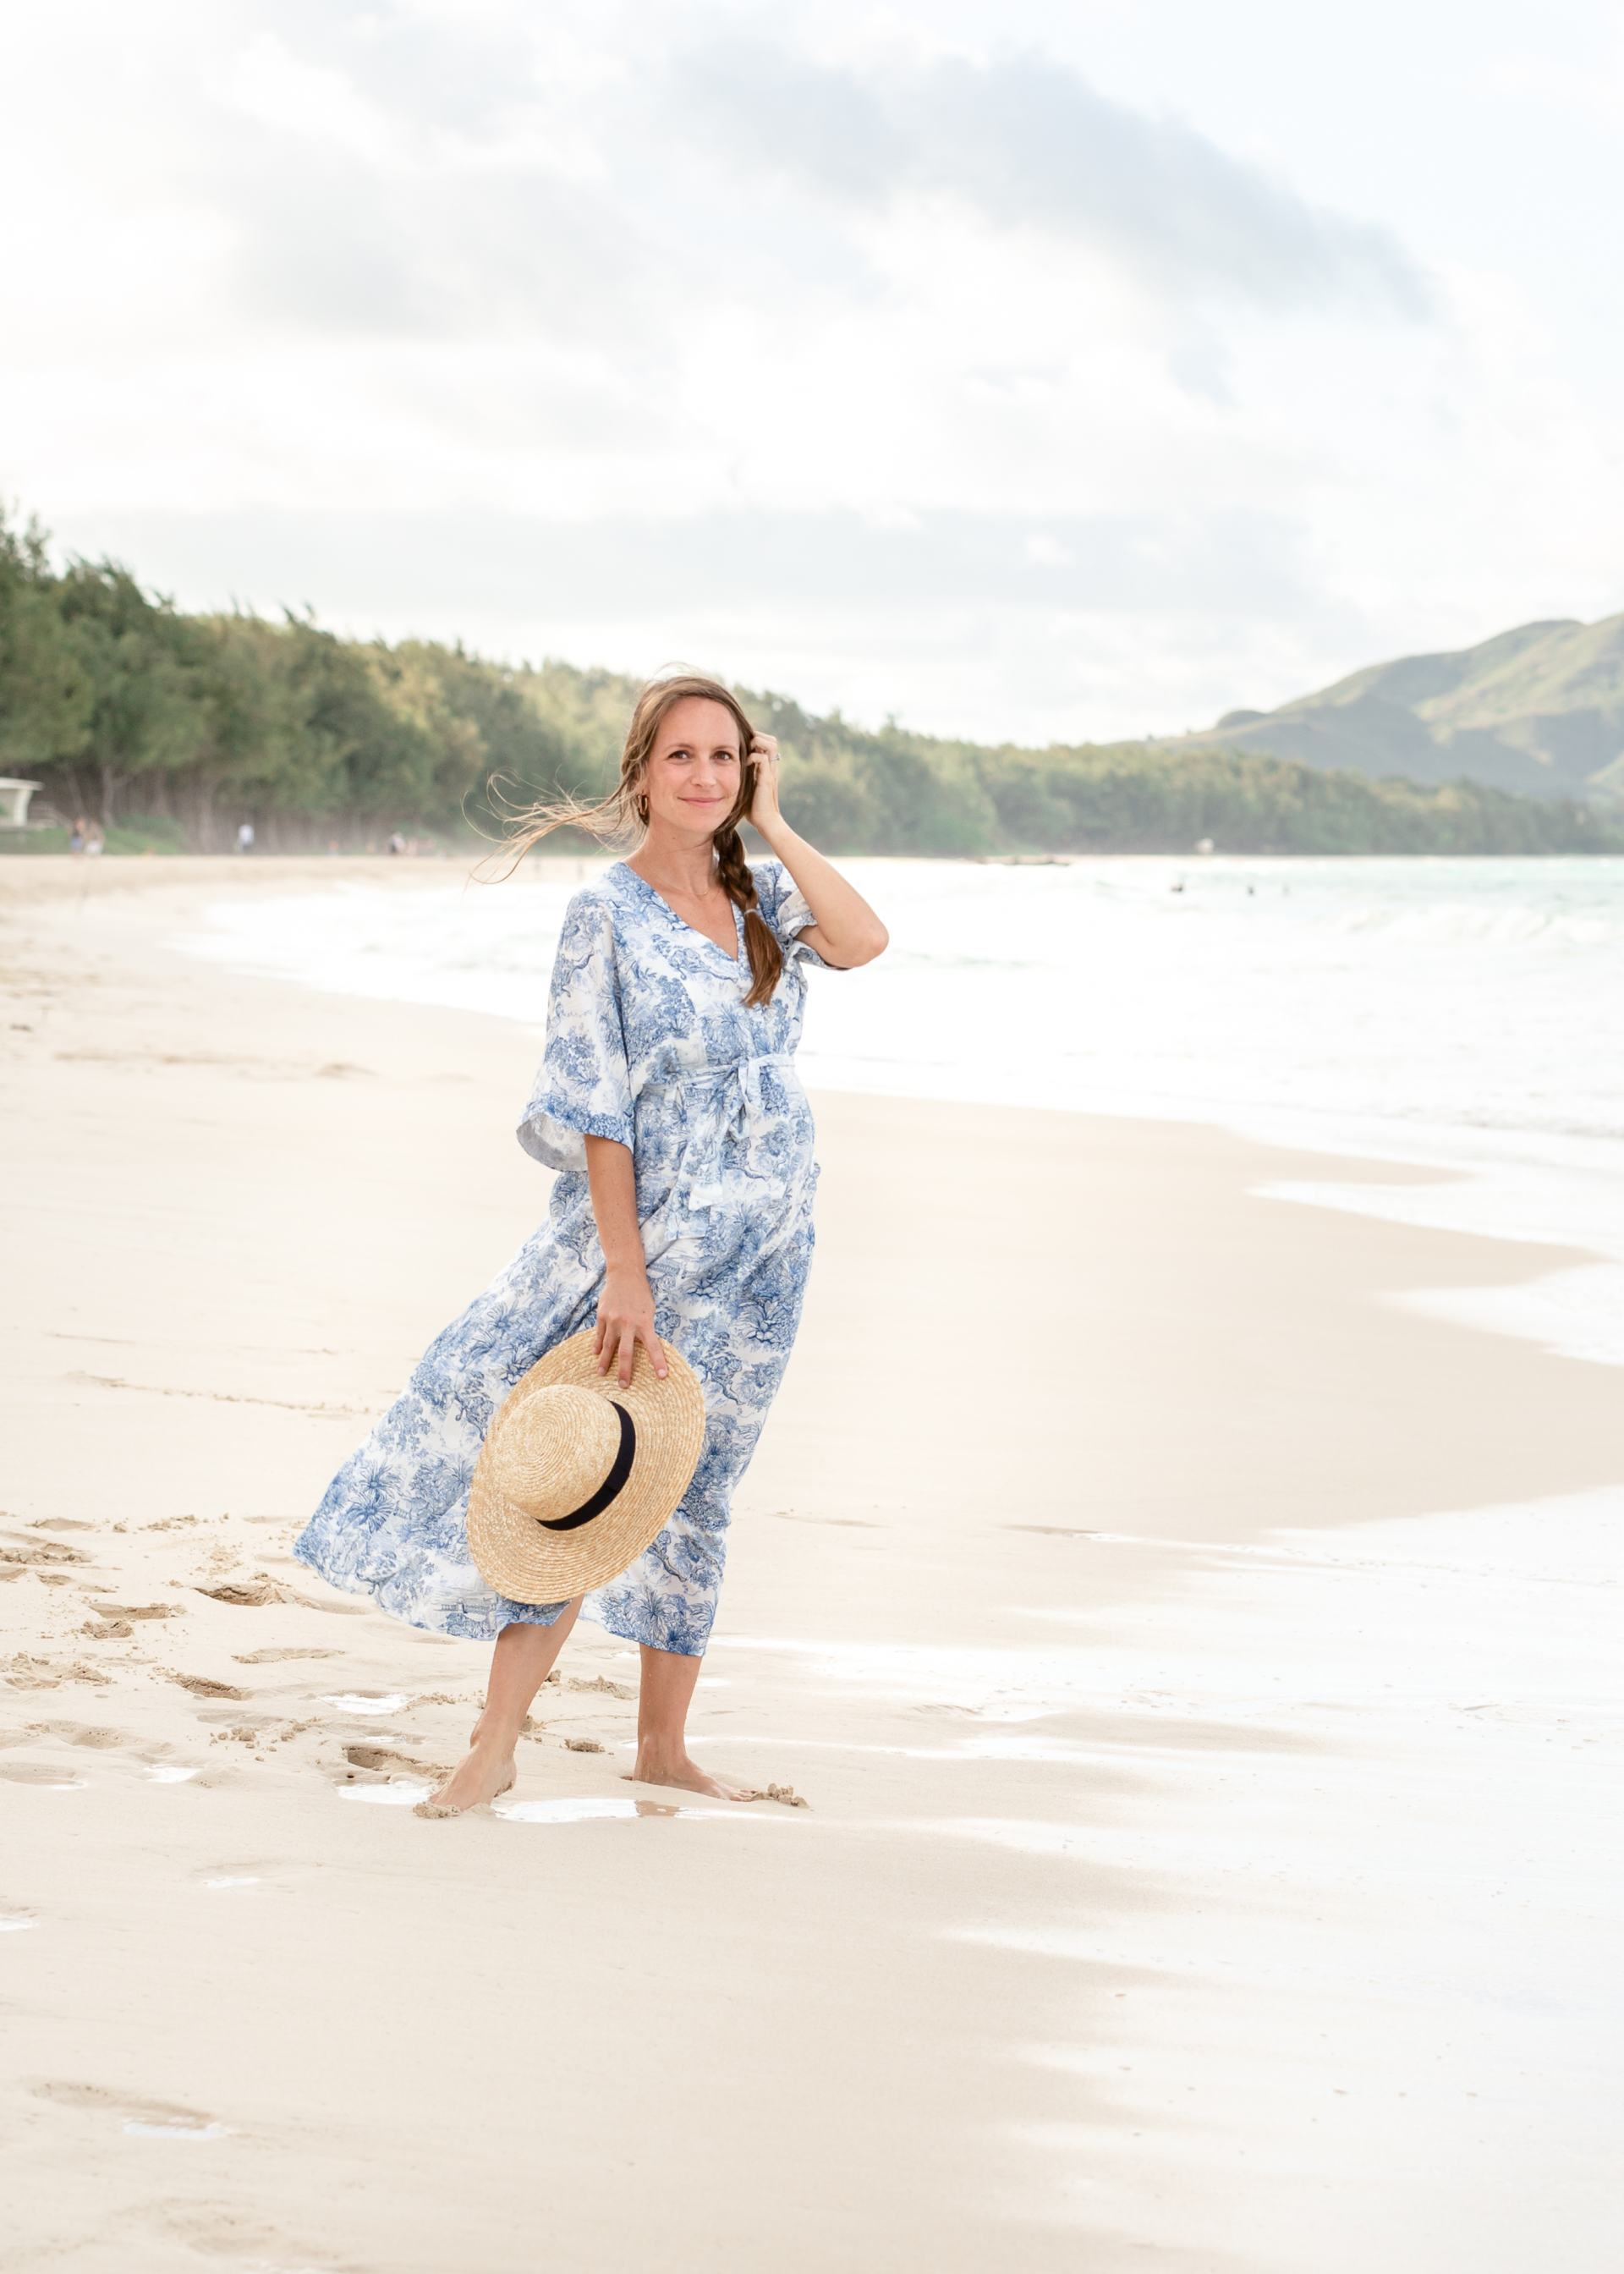 stephanieh photography - oahu photographer - maternity photos - 23 weeks pregnant - beach maternity photos - pregnancy photos - hawaii beach photos - hawaii beach photographer - blue and white dress - H&M blue and white toile dress - 23 weeks pregnant maternity photo shoot - maternity shoot - maternity photo ideas - pregnancy photo ideas - waimanalo beach - hawaii blogger - honolulu blogger - mom blogger - classic style maternity photos - 23 weeks pregnant - beach maternity photos - pregnancy photos - hawaii beach photos - hawaii beach photographer - blue and white dress - H&M blue and white toile dress - 23 weeks pregnant maternity photo shoot - maternity shoot - maternity photo ideas - pregnancy photo ideas - waimanalo beach - hawaii blogger - honolulu blogger - mom blogger - classic style